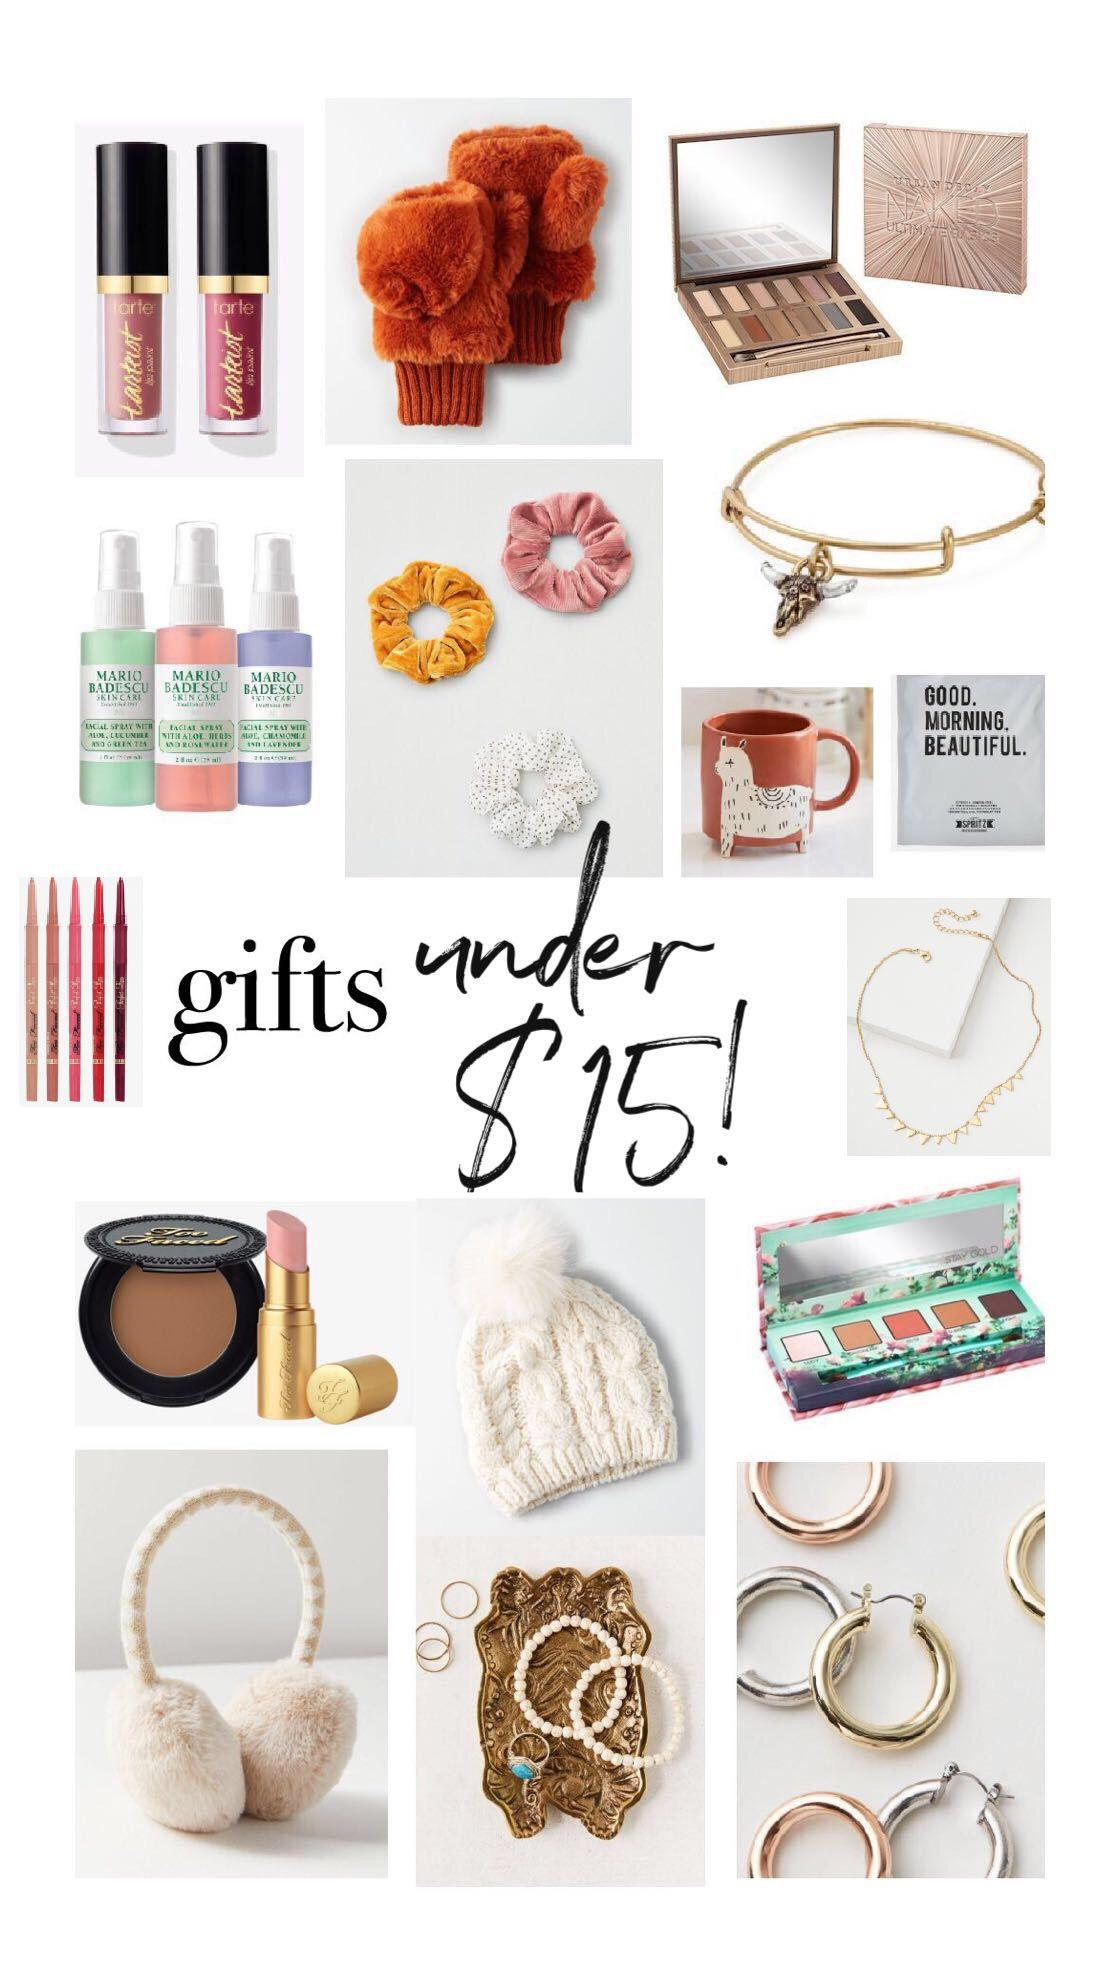 GIFTS UNDER $15!